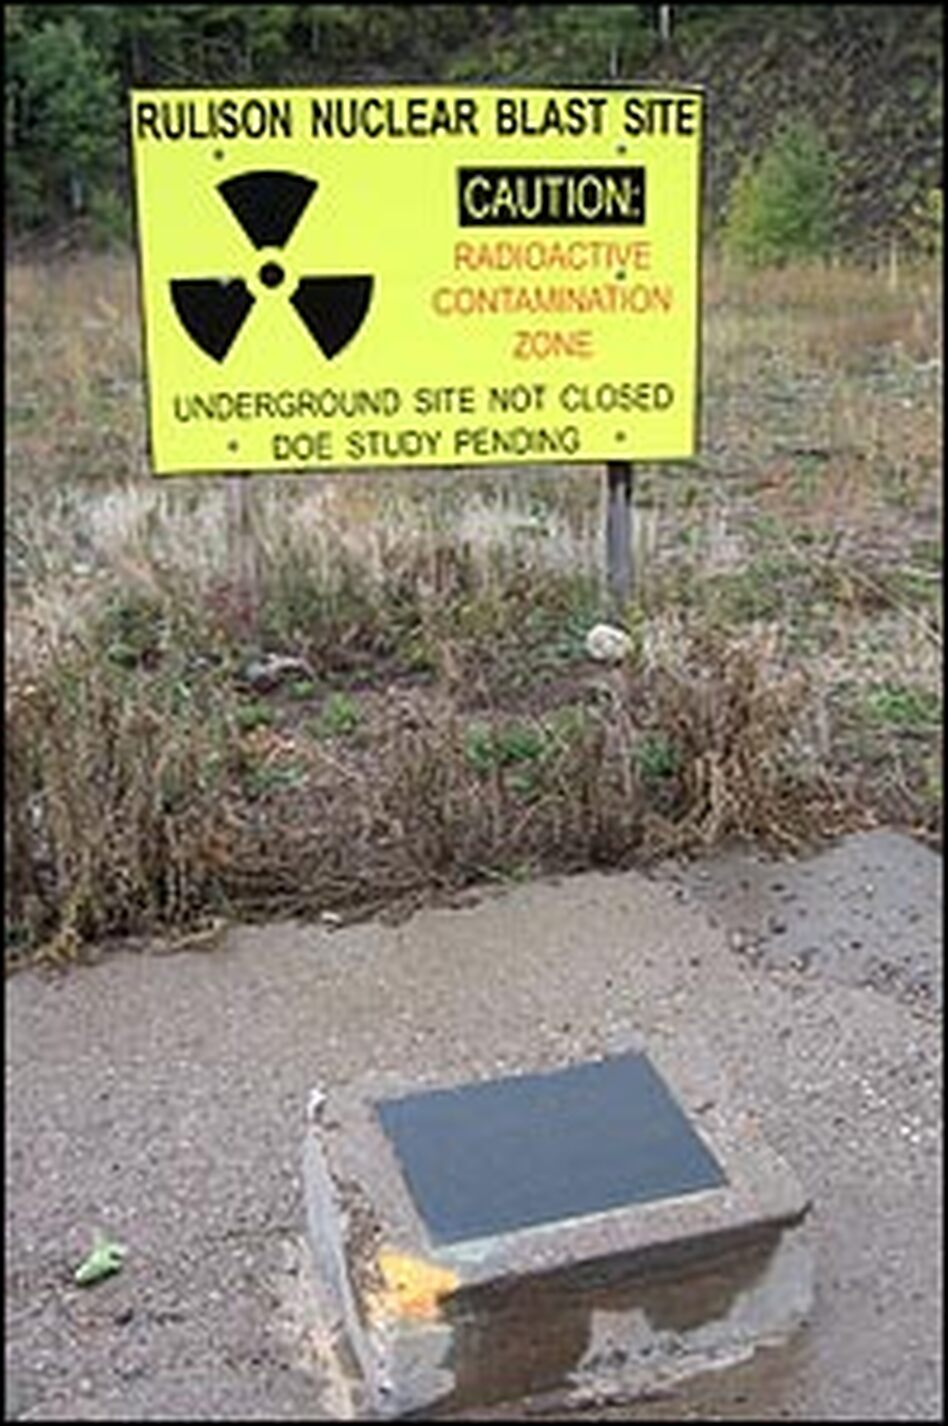 A sign warns of radioactive contamination near the federal government's Rulison blast site near Parachute, Colo.